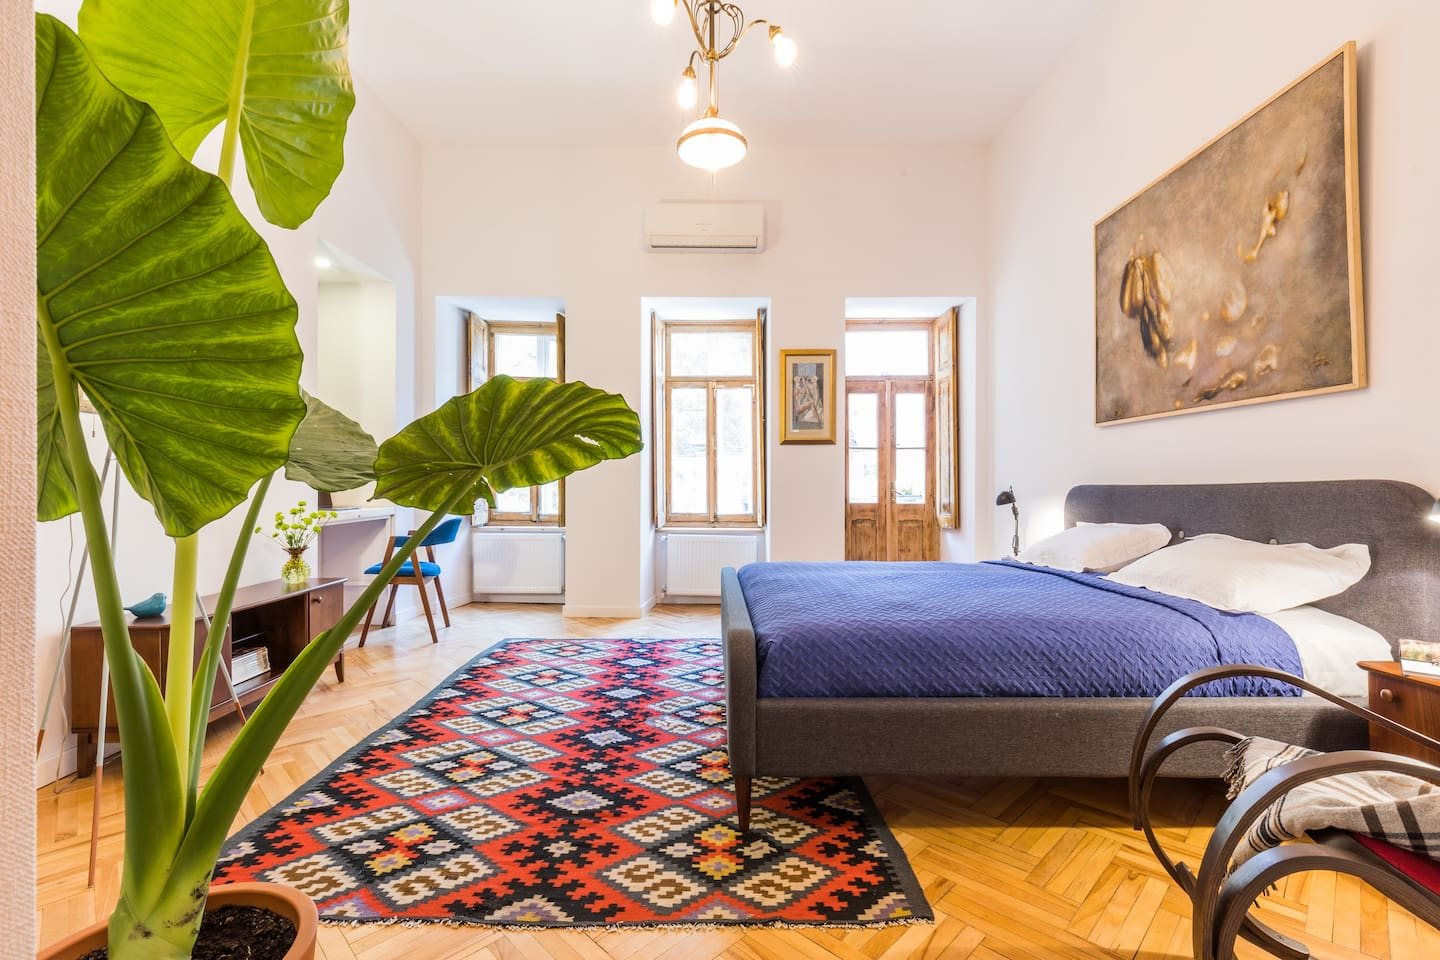 The bedroom is specious and bright, but if the sunlight will bother you, there are beautiful blinds on the windows. They create a vintage atmosphere in the room. We specially preserved them from the old apartments.